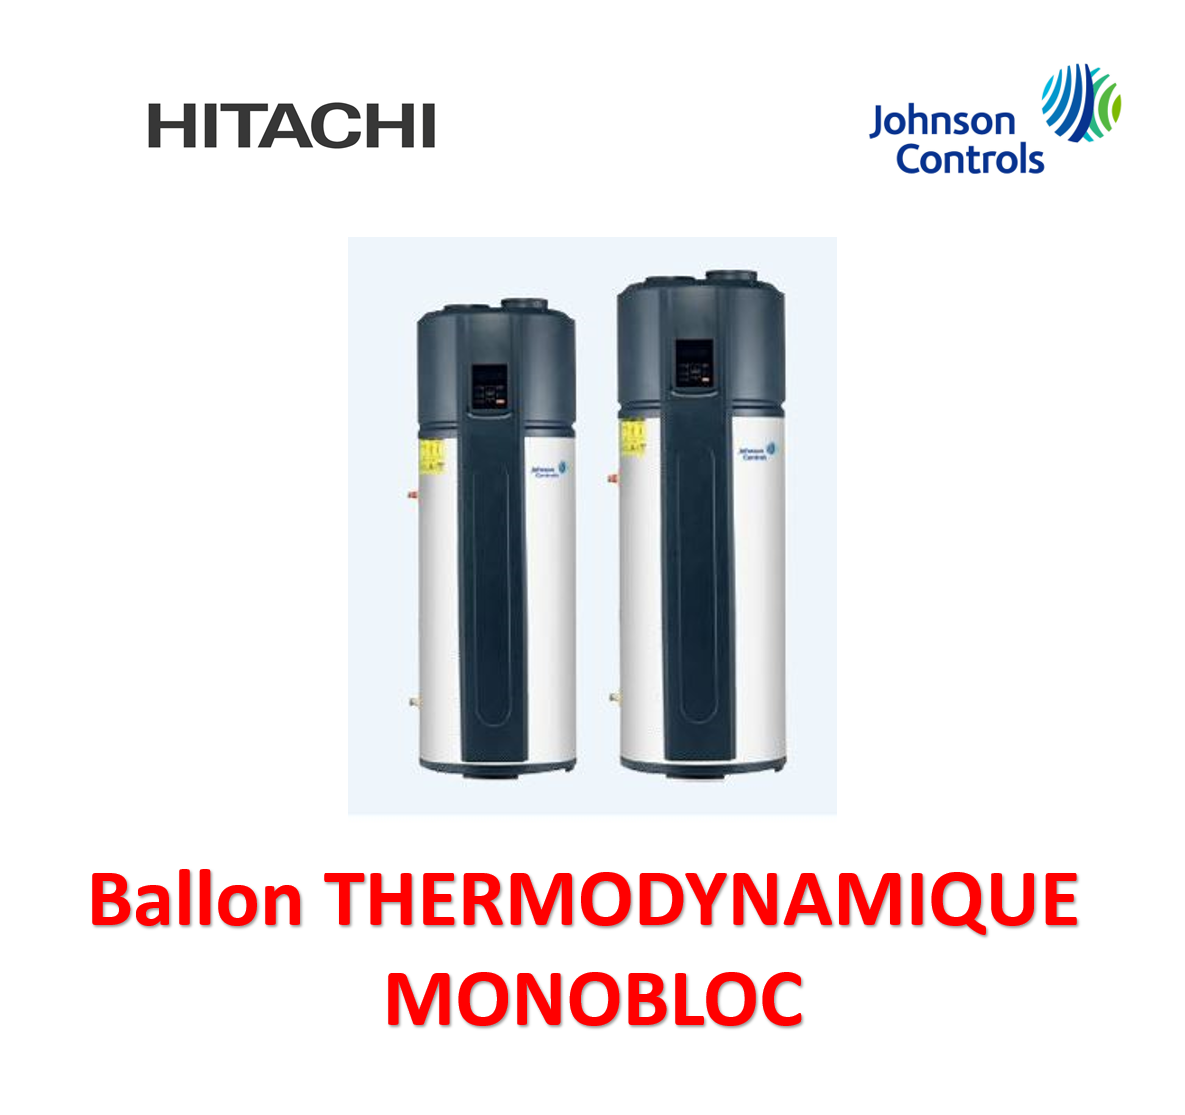 Ballon THERMODYNAMIQUE MONOBLOC